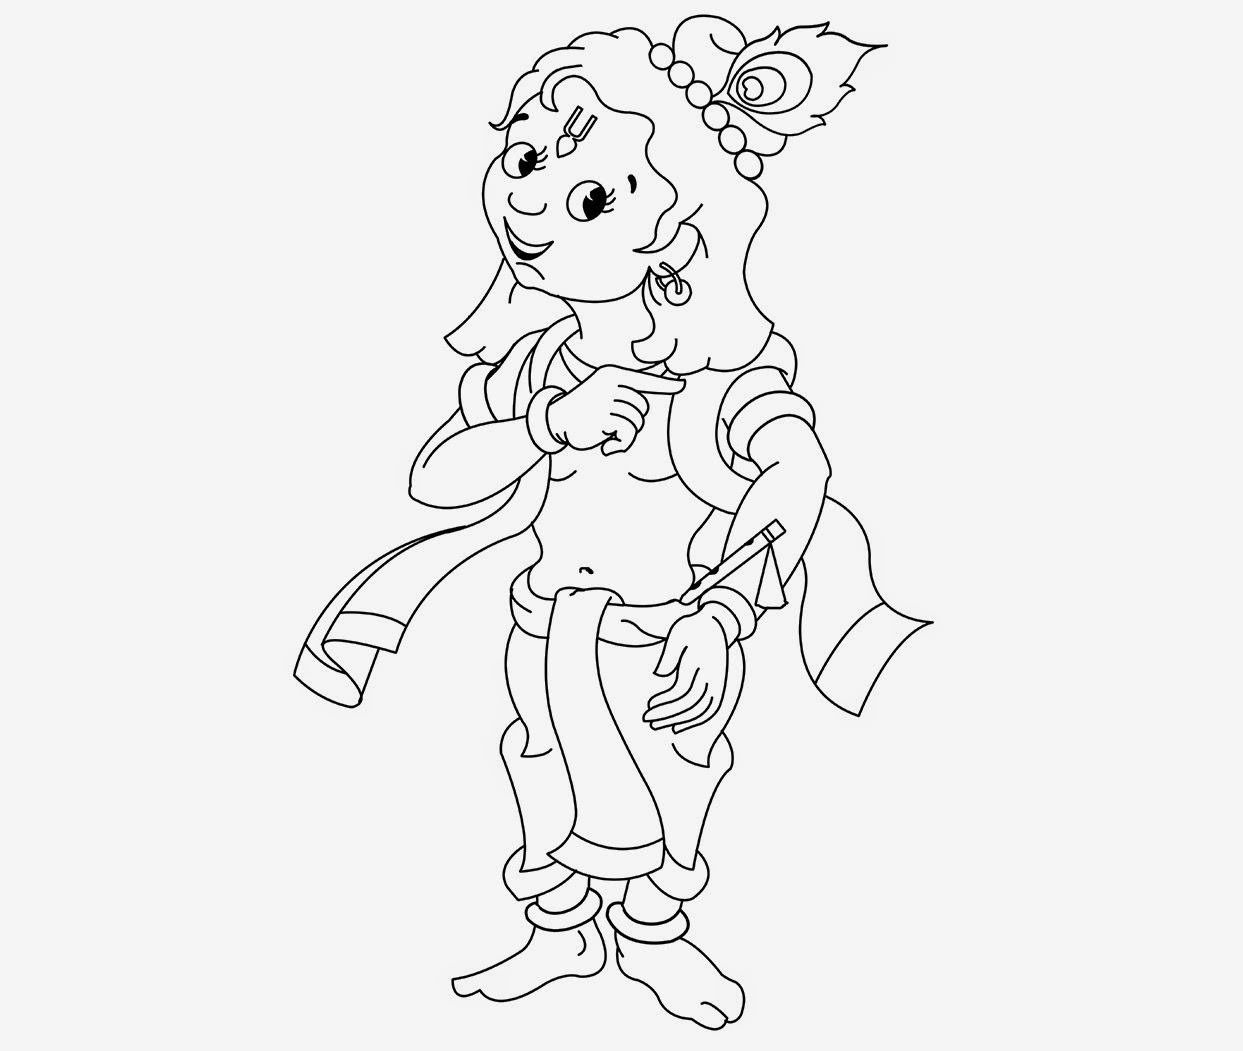 coloring pages of little krishna baby krishna coloring pages at getcoloringscom free coloring little of krishna pages